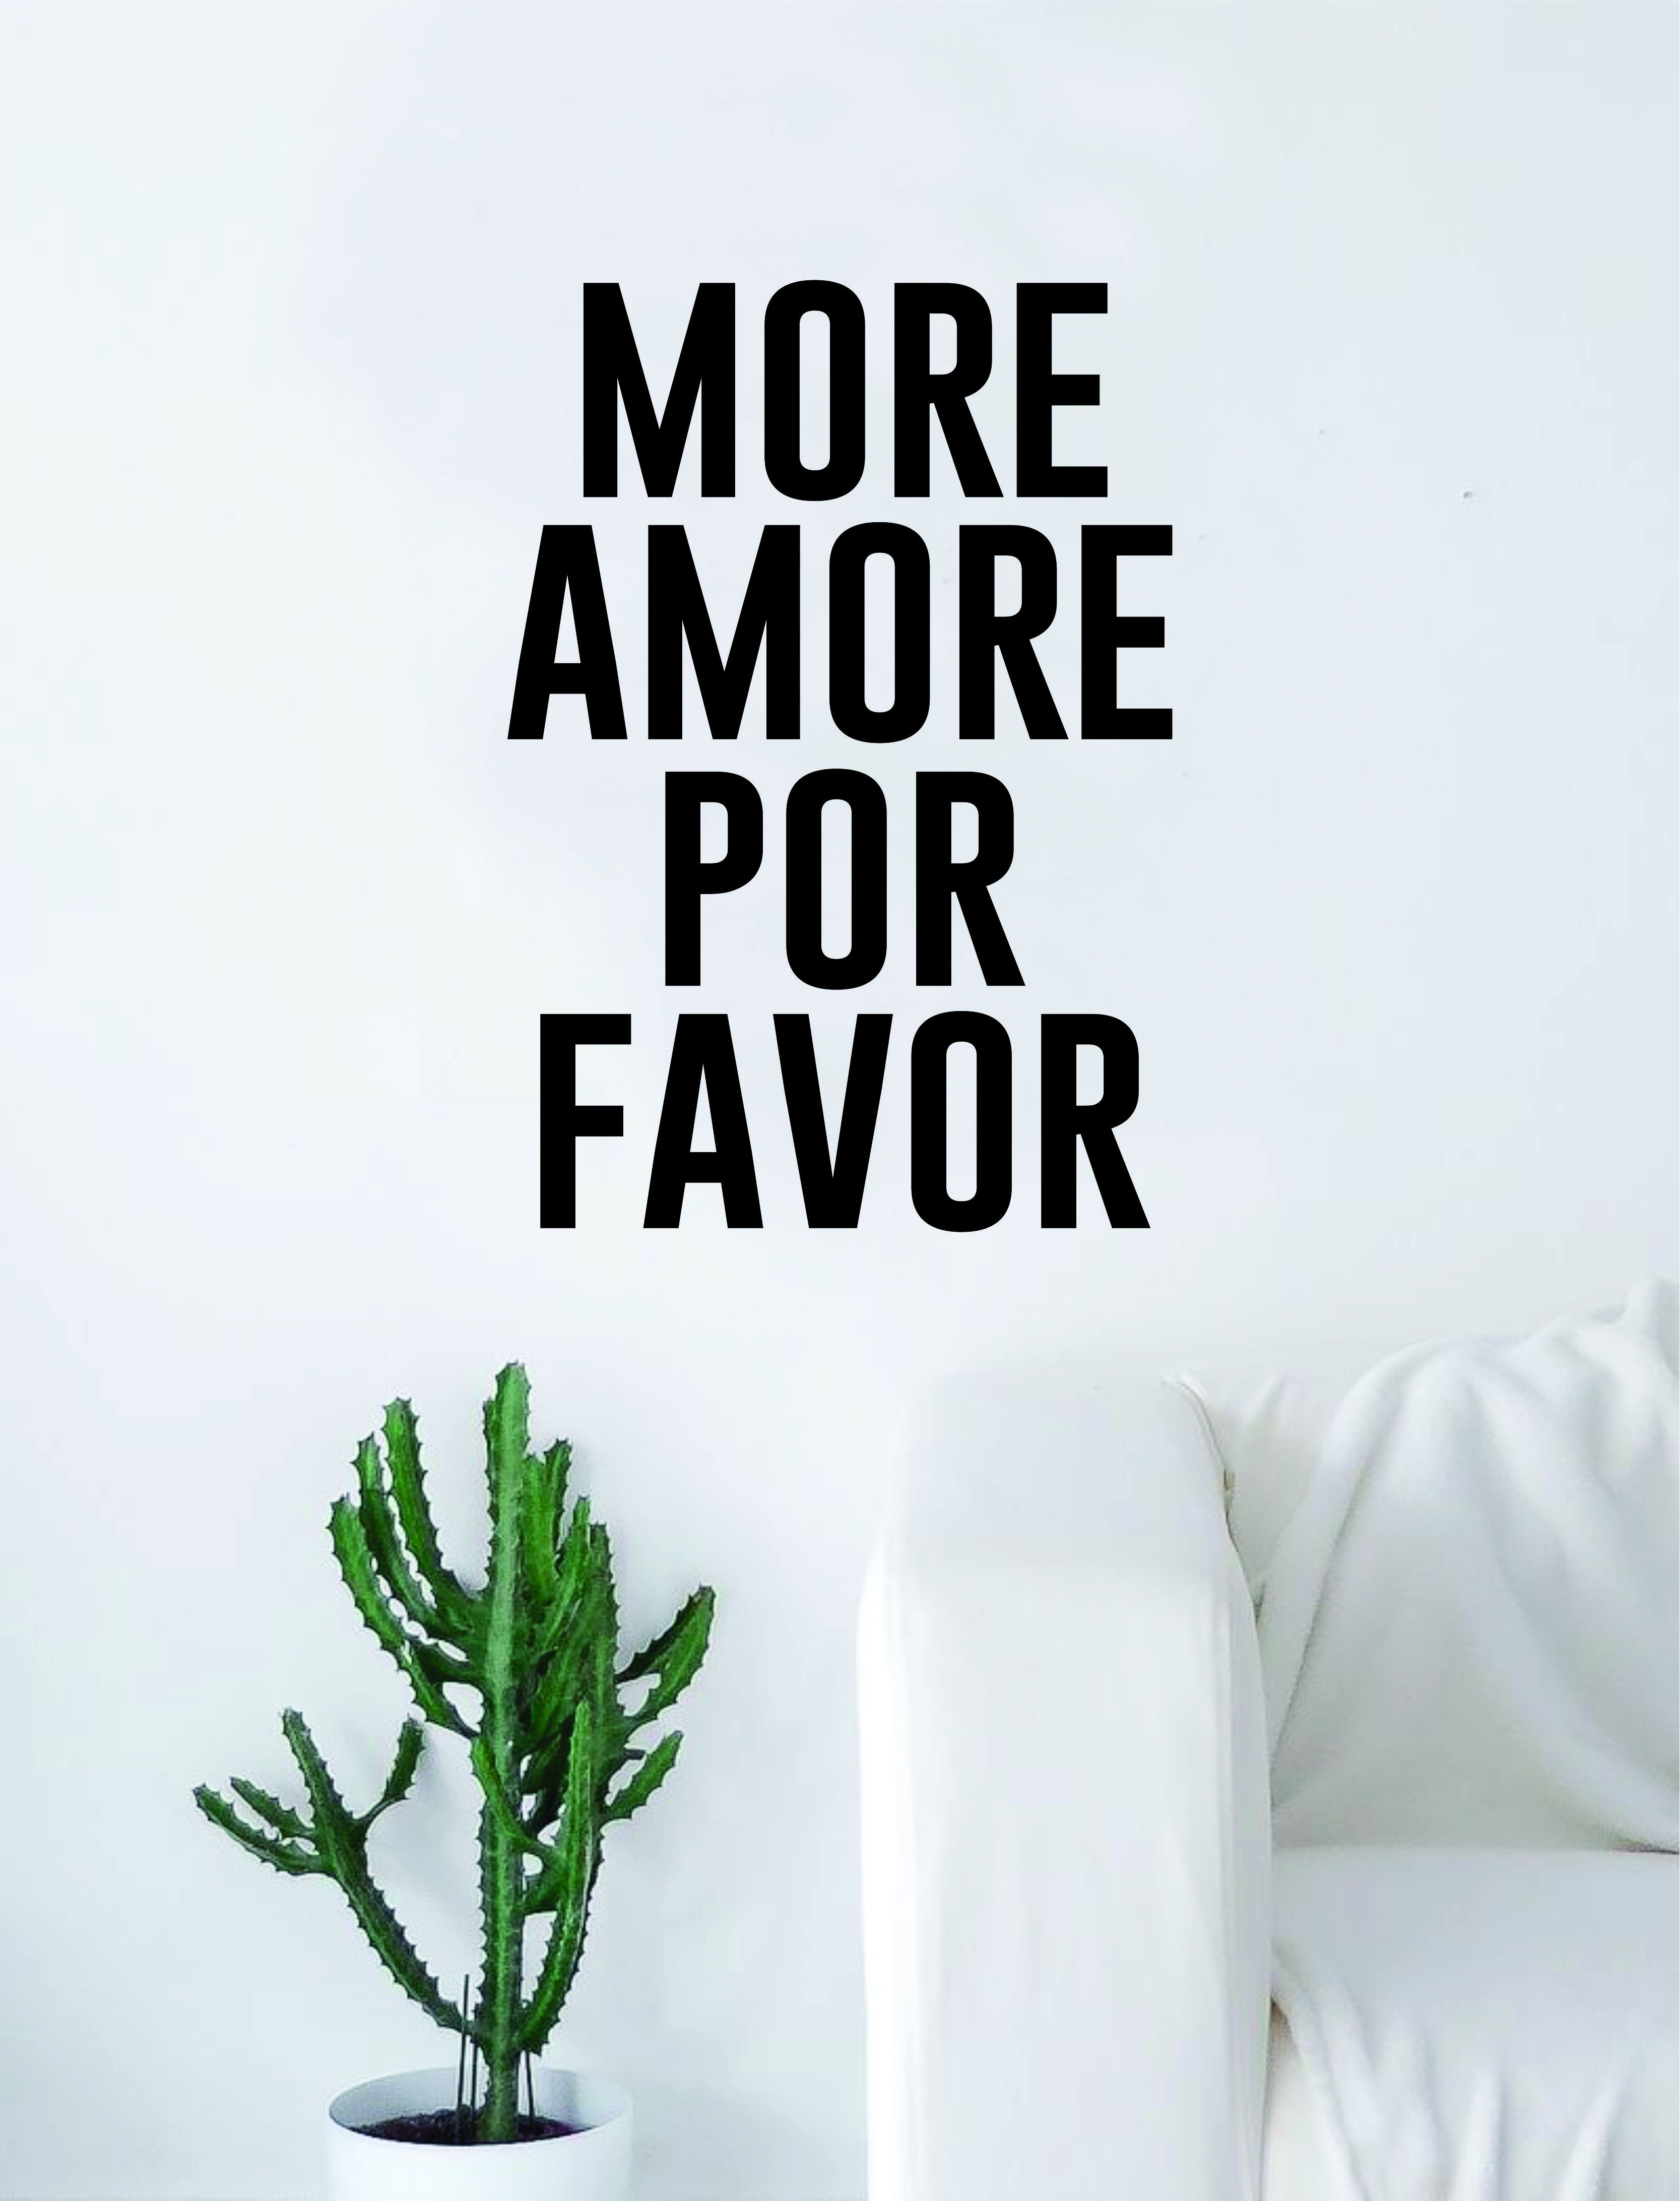 """More Amore Por FavorThe latest in home decorating. Beautiful wall vinyl decals, that are simple to apply, are a great accent piece for any room, come in an array of colors, and are a cheap alternative to a custom paint job. Default color is blackMEASUREMENTS: 28"""" x 19 1/2"""" About Our Wall Decals: * Each decal is made of high quality, self-adhesive and waterproof vinyl.* Our vinyl is rated to last 7 years outdoors and even longer indoors.* Decals can be applied to any clean, smooth and flat surfac"""